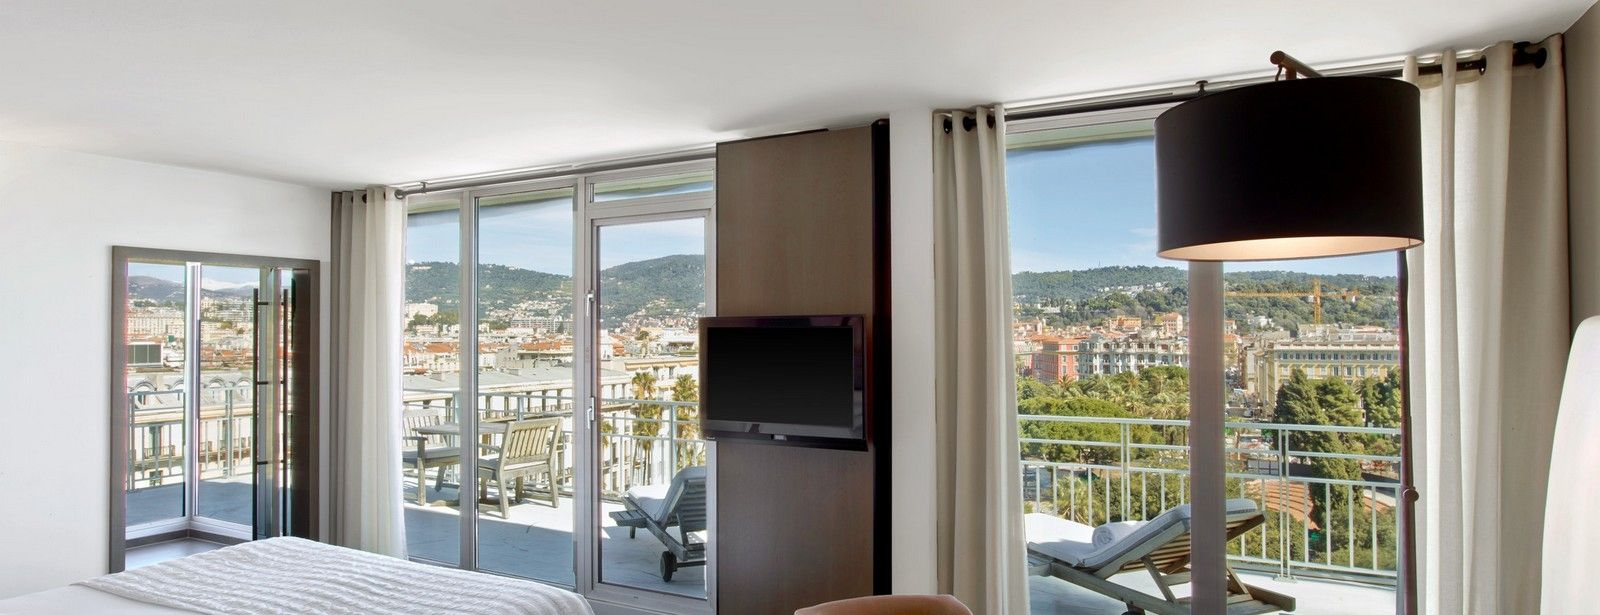 Junior Suite Gardens and Sea View In Le Meridien Nice